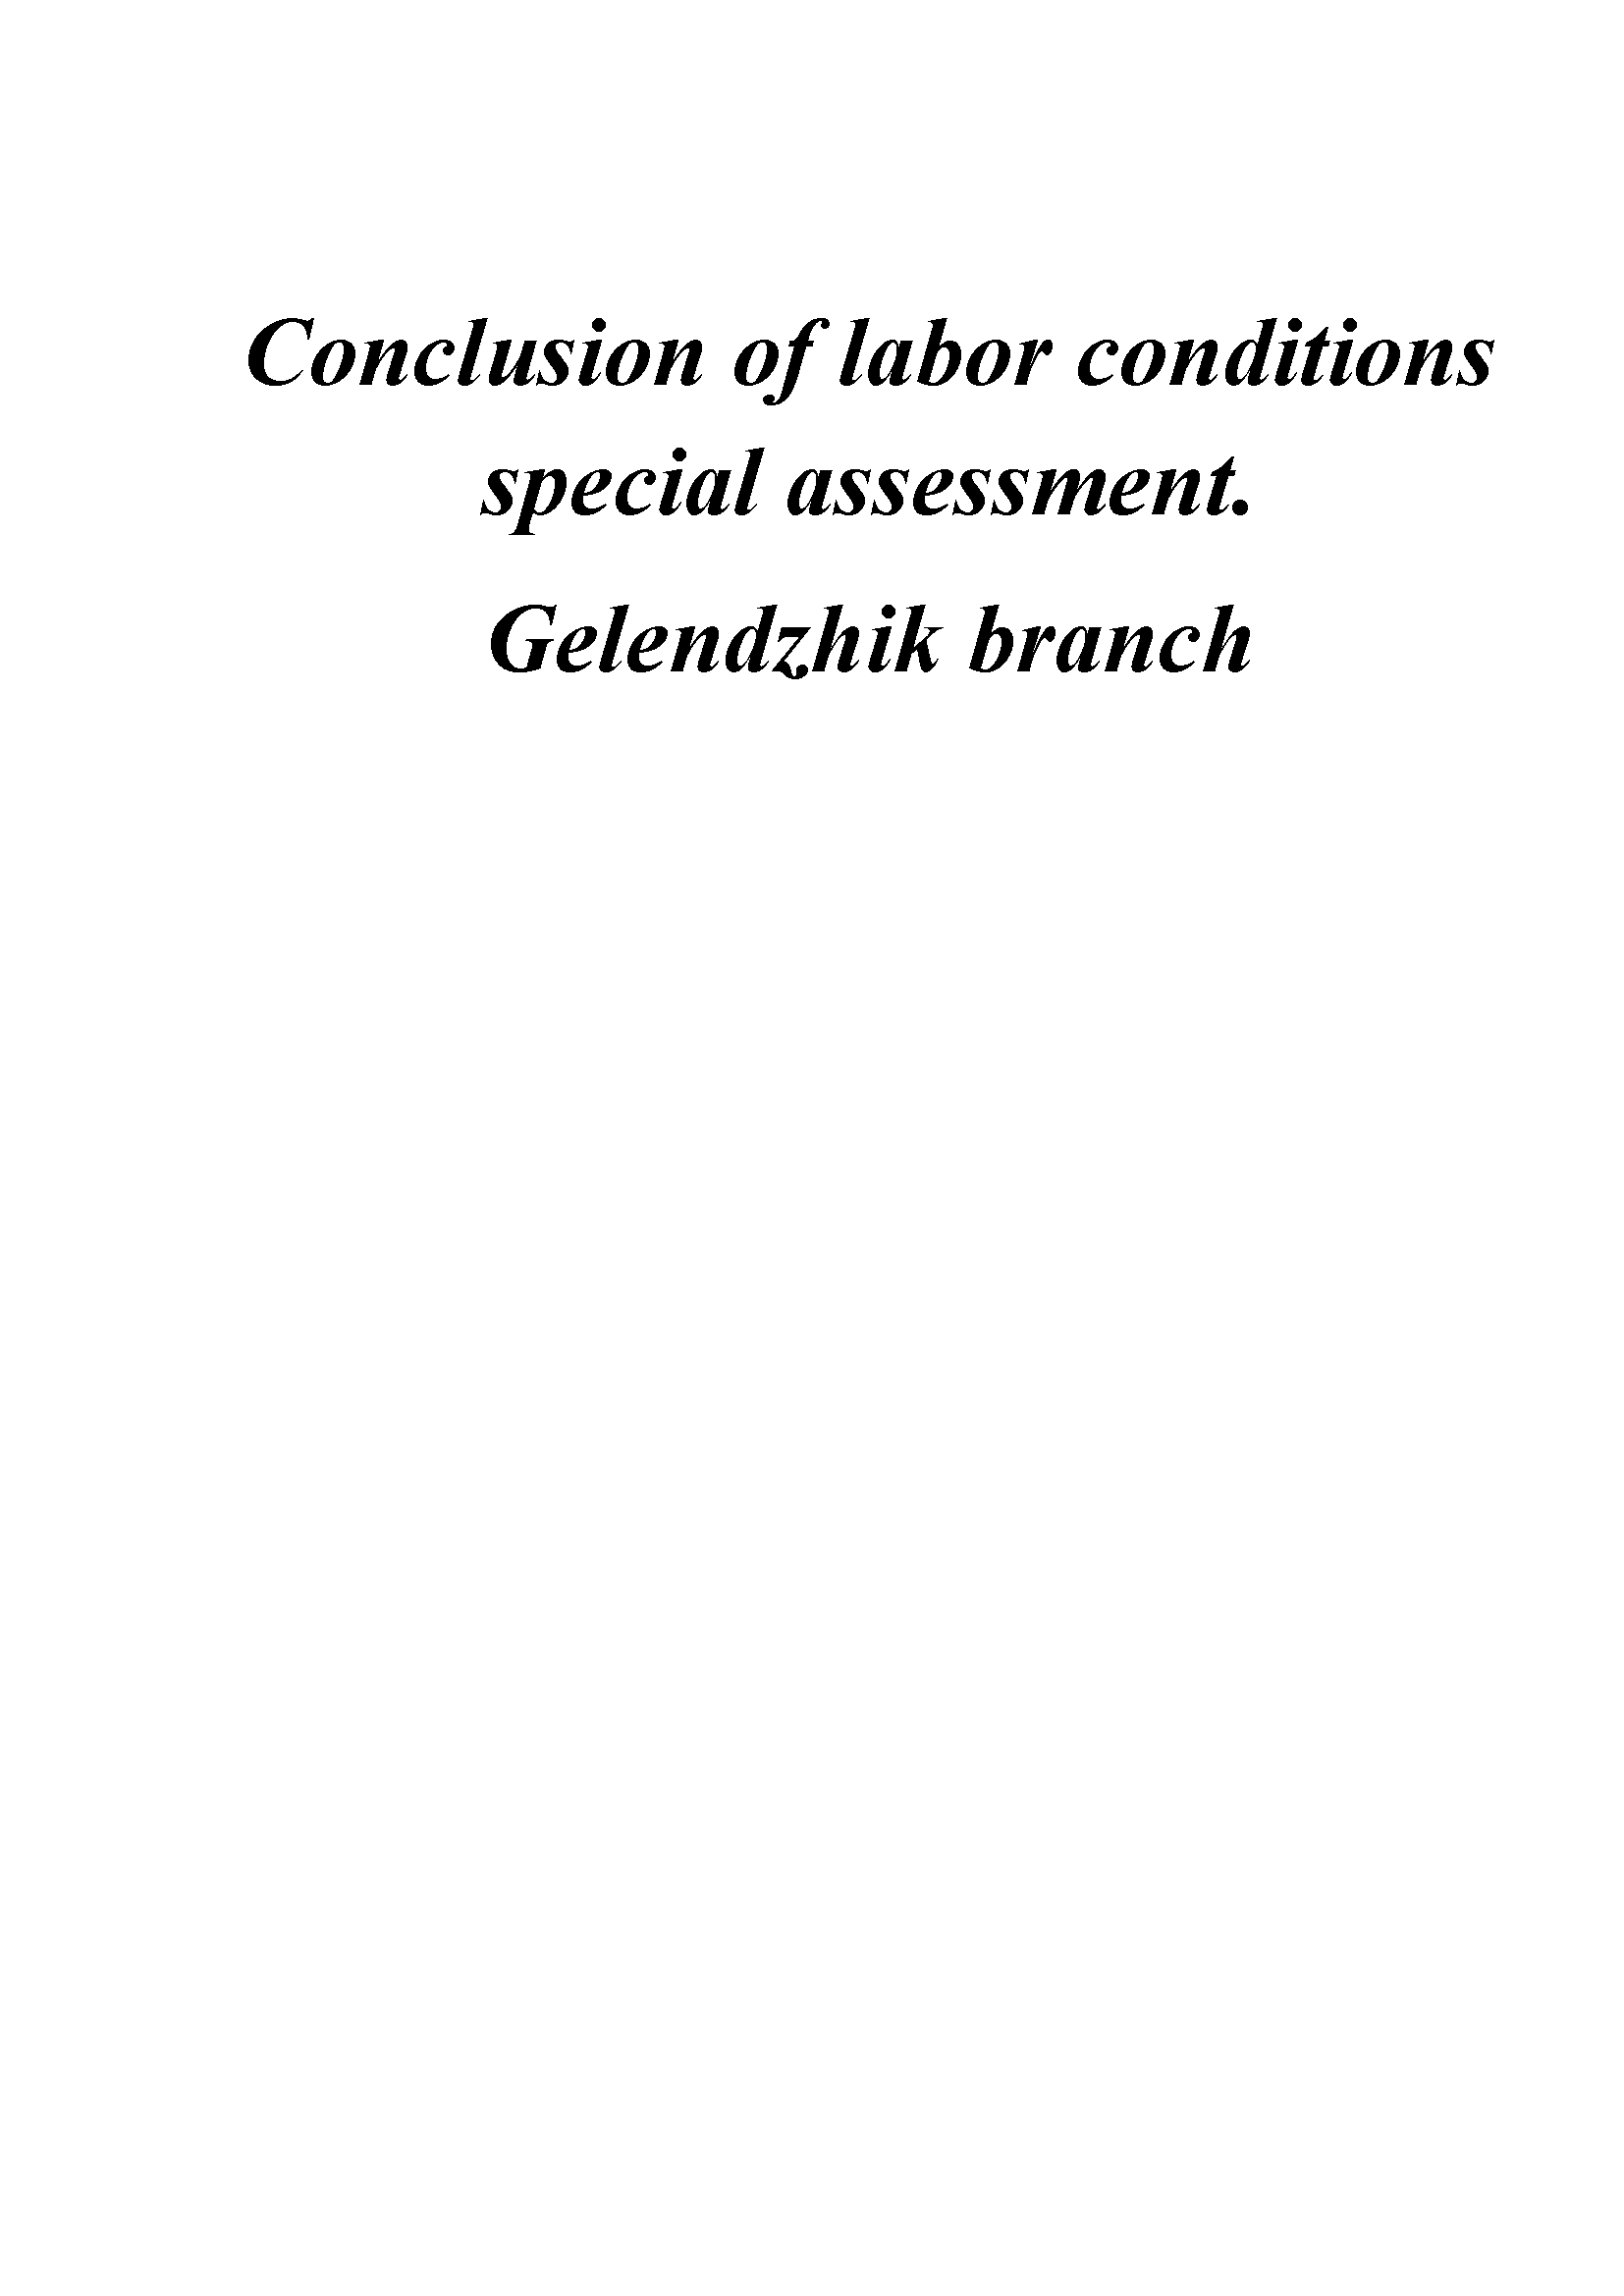 Conclusion of labor conditions special assessment. Gelendzhik